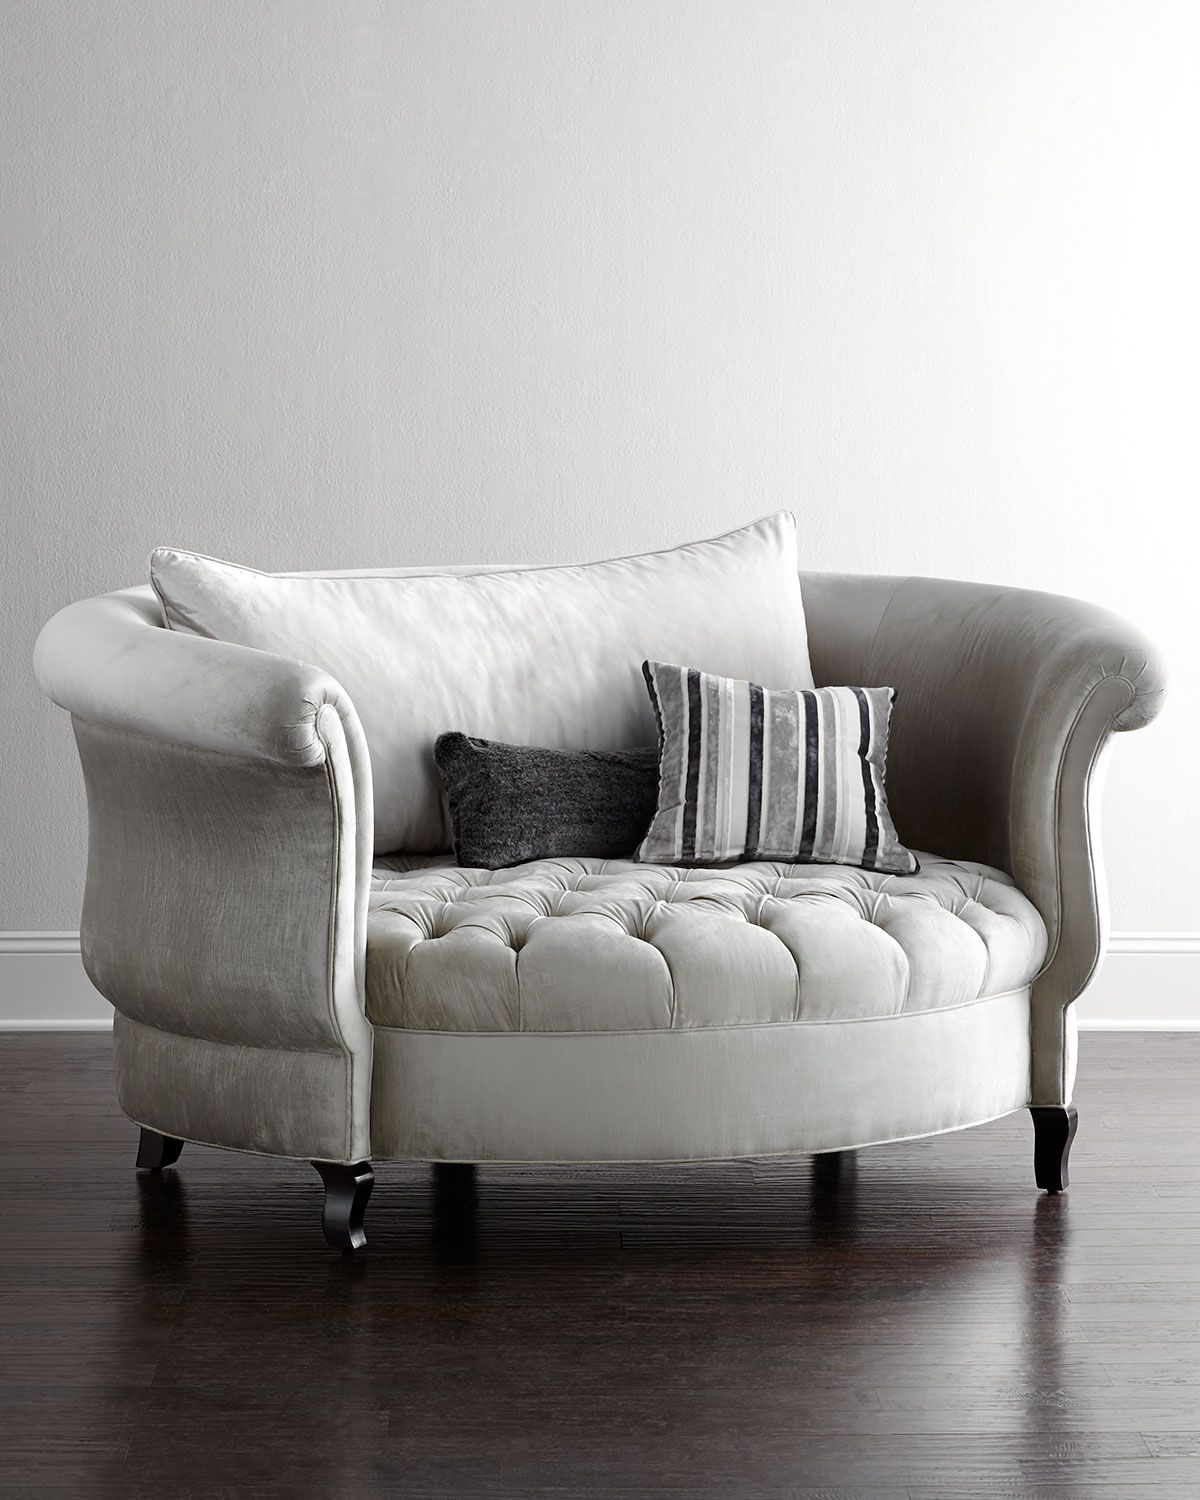 Haute House Harlow Cuddle Chair, Neiman Marcus. DY-YING. | Dream ...